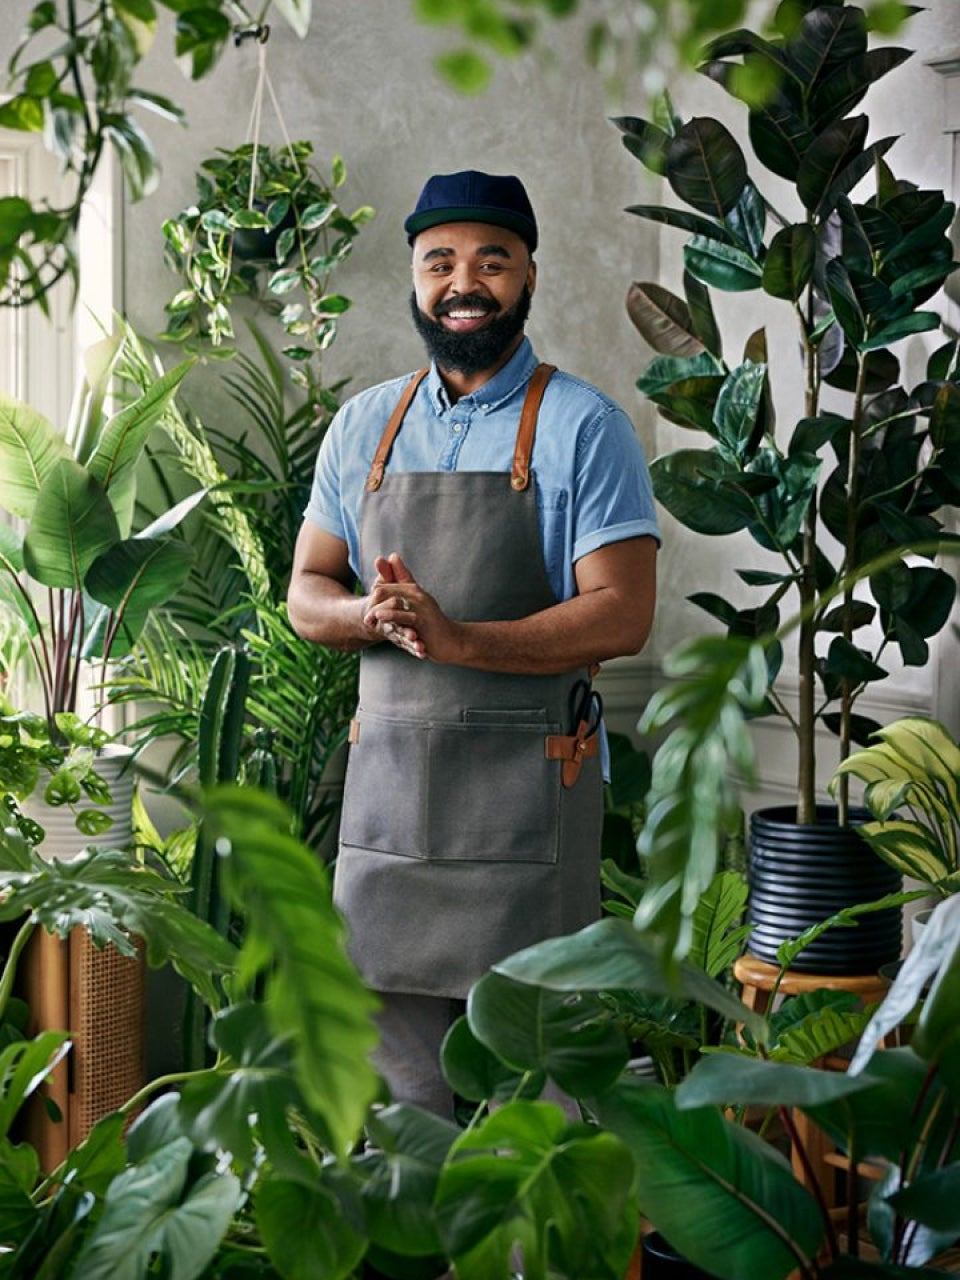 First Look: Plant Enthusiast Hilton Carter's New Target Designer Collection Will Make Your Spring